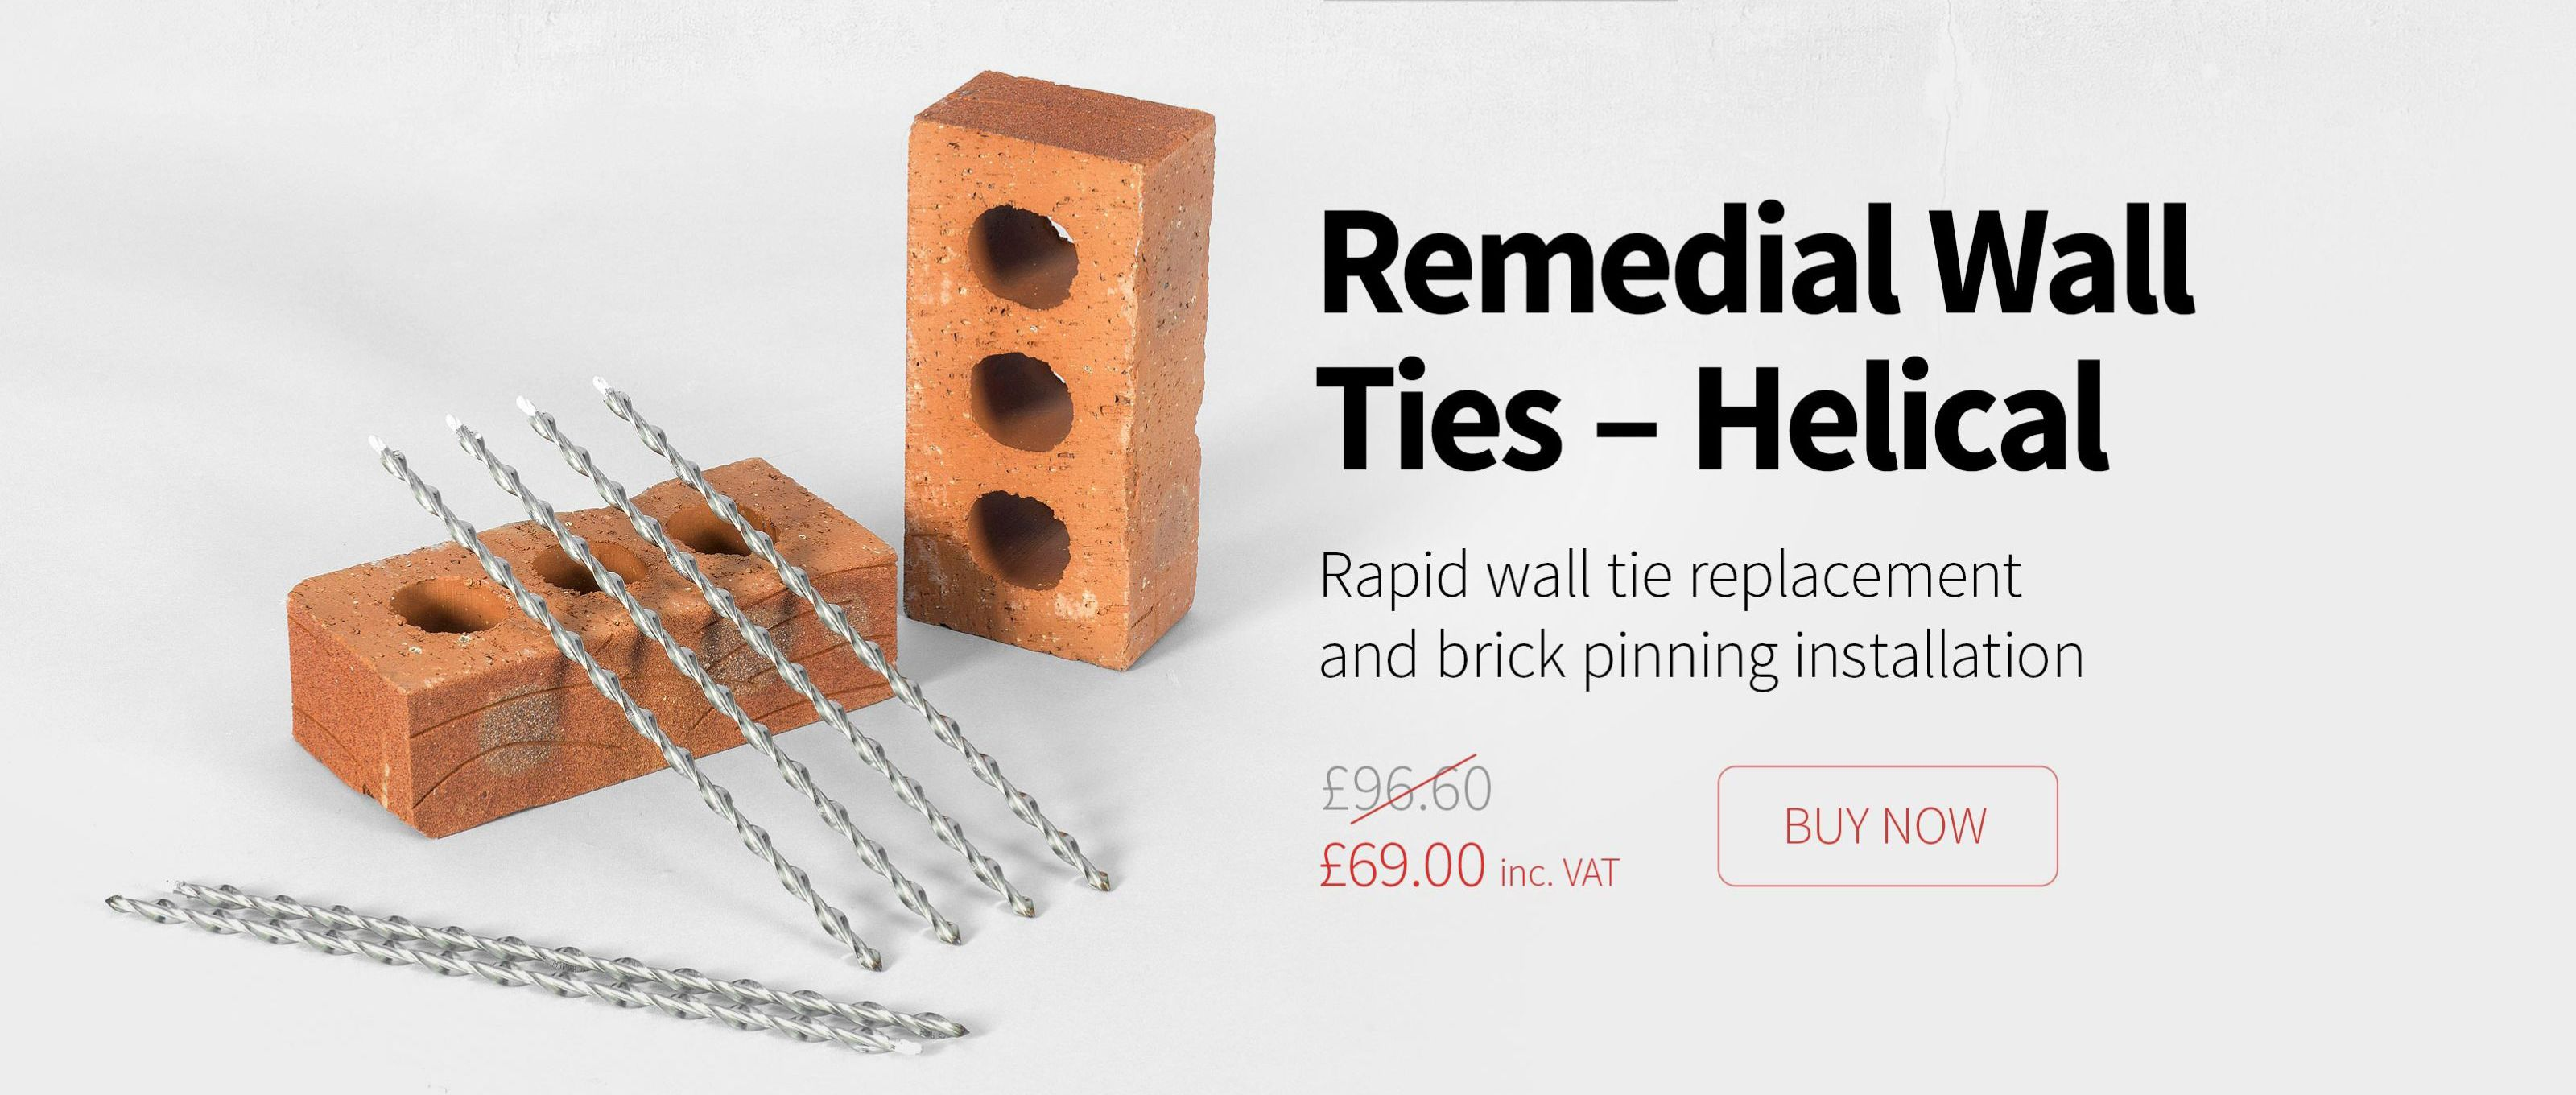 Remedial Wall Ties – Helical